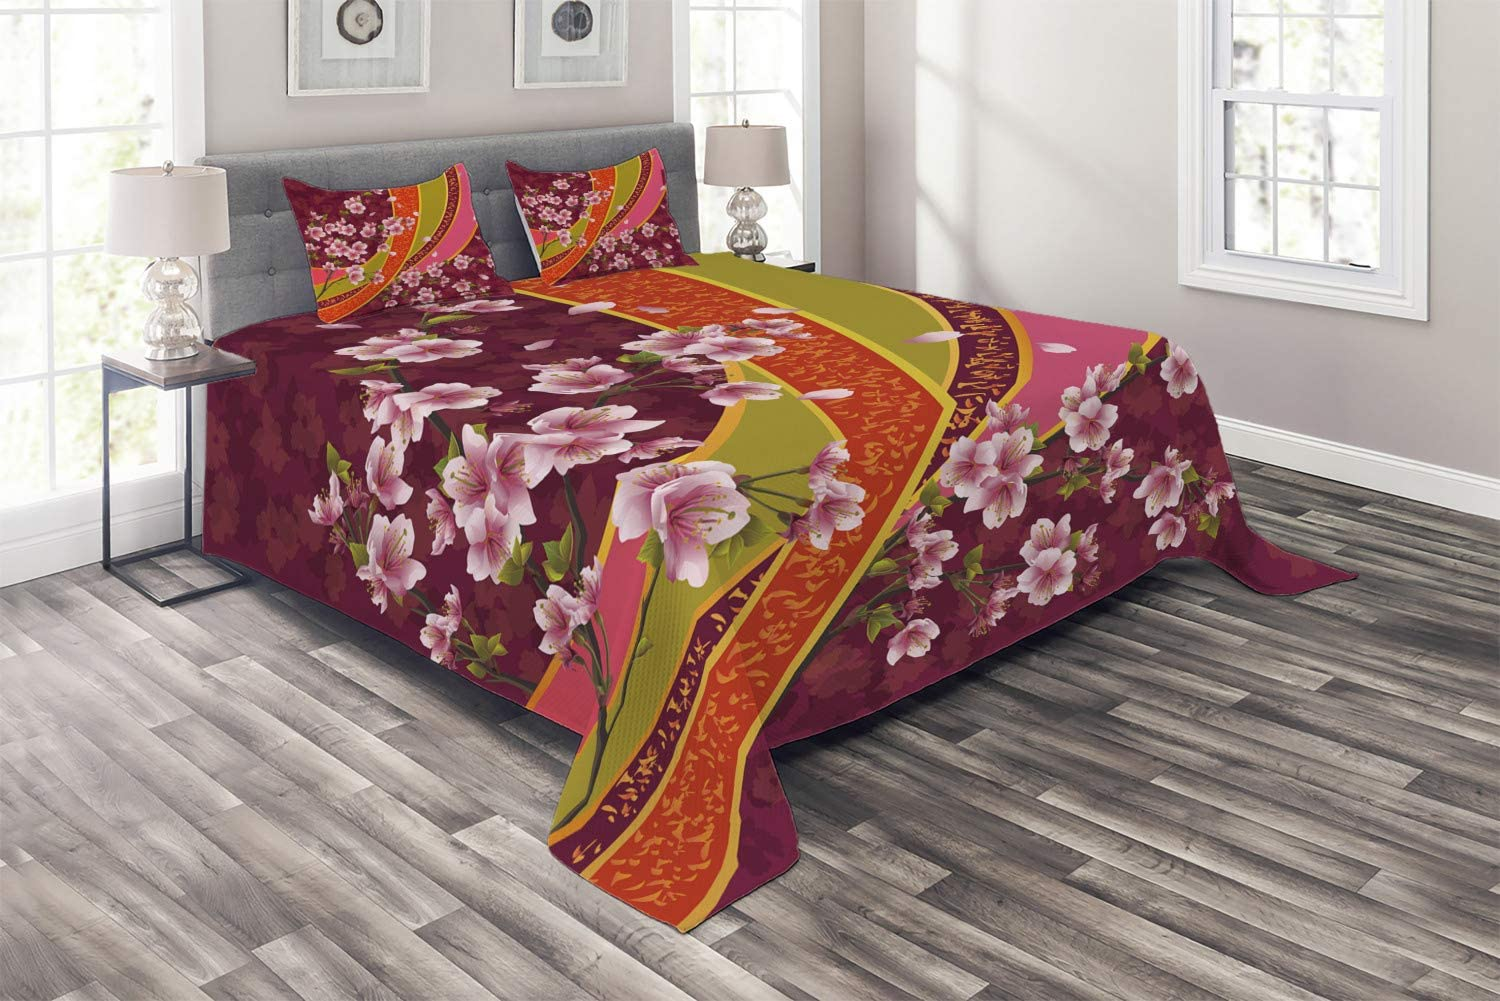 Ambesonne Flower Coverlet, Oriental Backdrop Sakura Blossom Japanese Cherry Tree Print, 3 Piece Decorative Quilted Bedspread Set with 2 Pillow Shams, Queen Size, Pink Orange